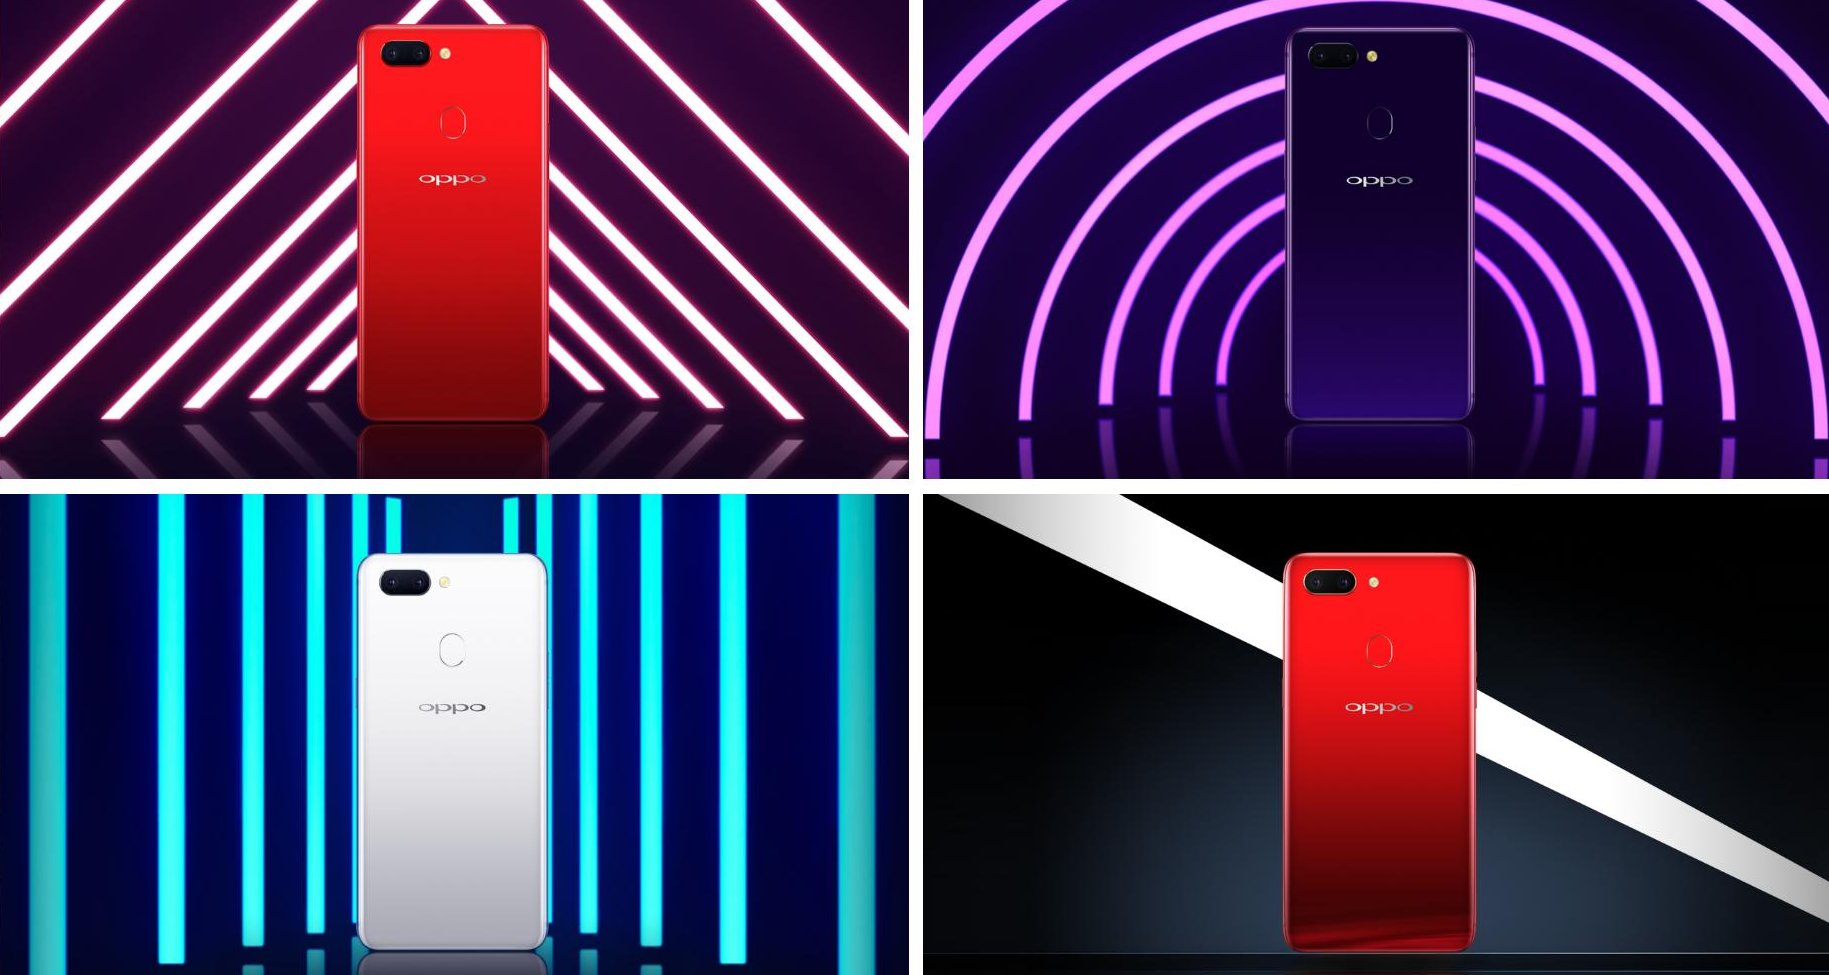 OPPO-R15-oficial-torna-four-1